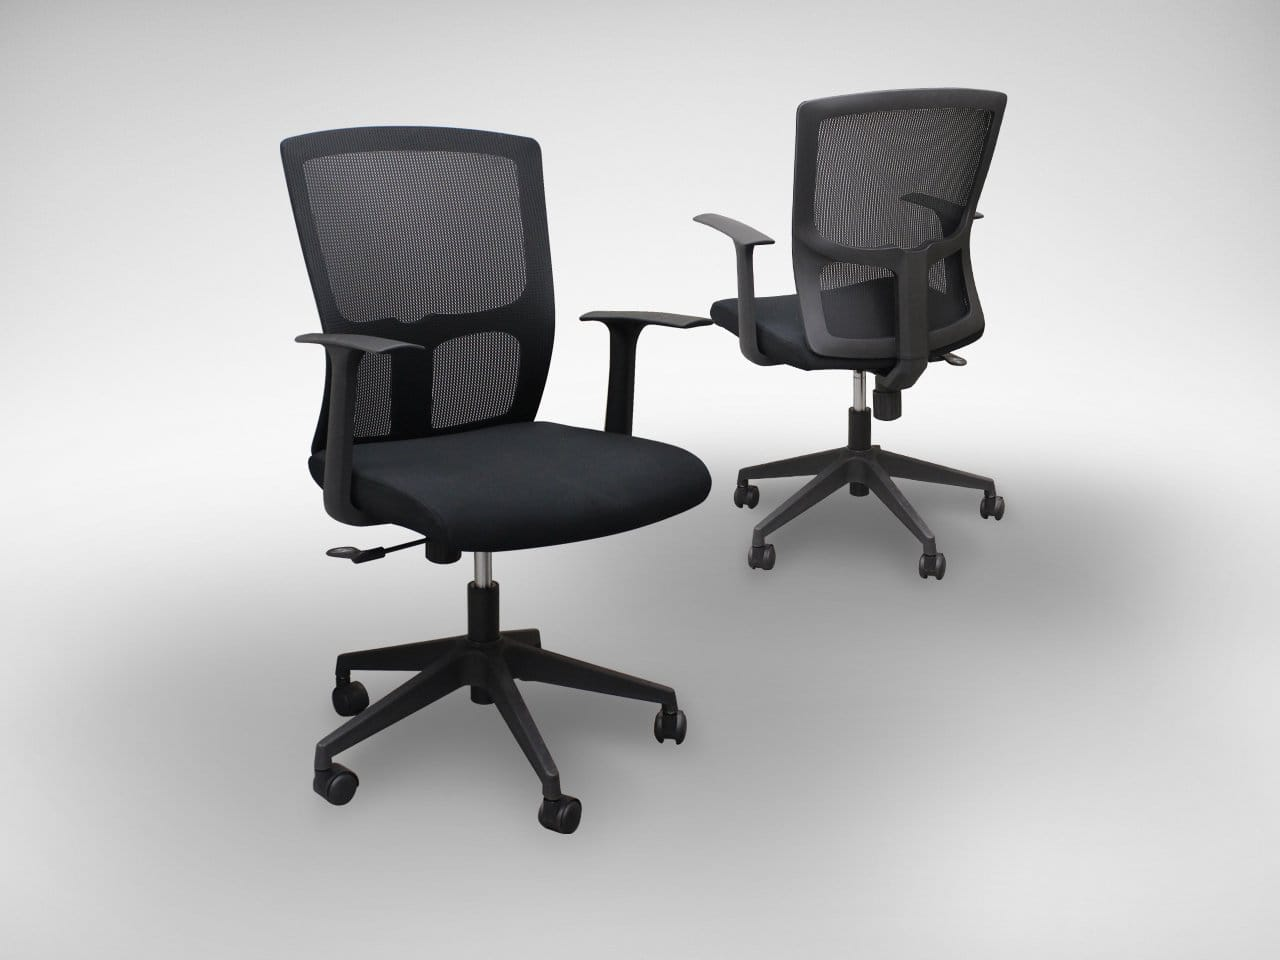 91 Office Furniture Wholesale Singapore Home